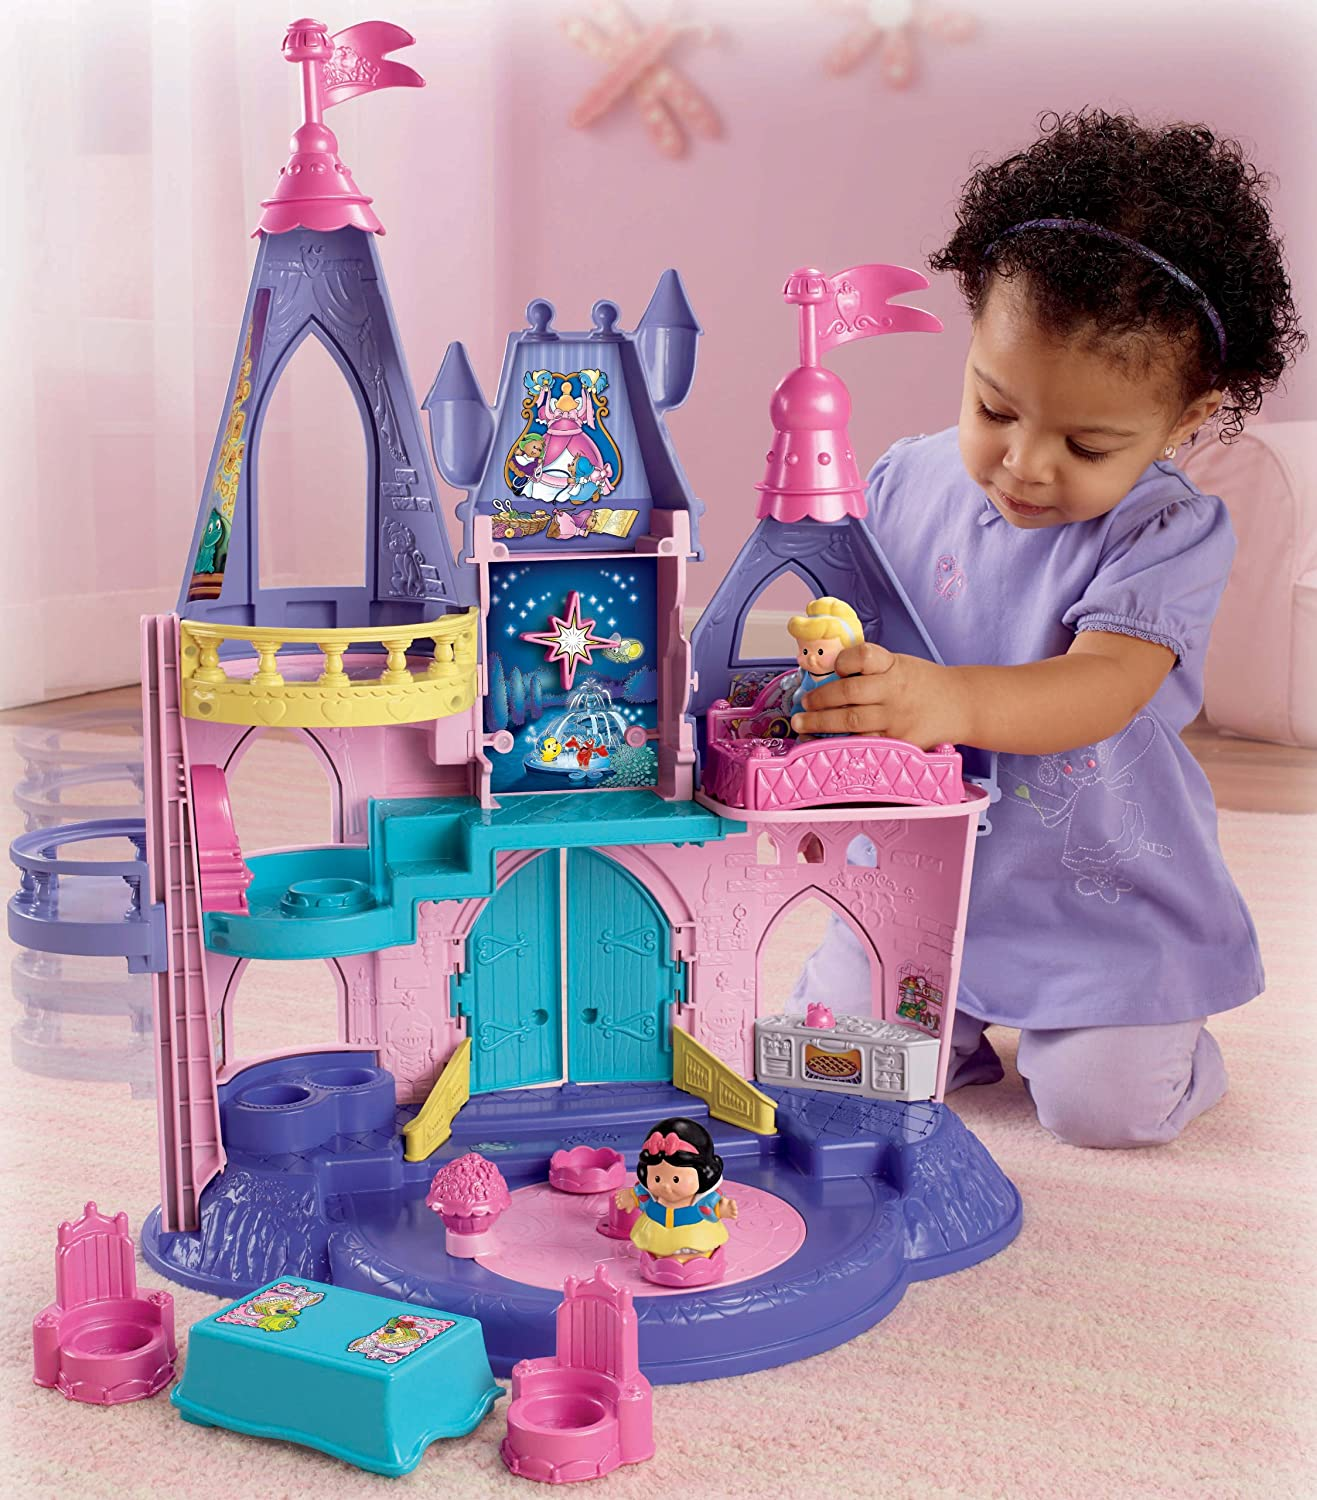 Princess toys for 2 year old girls